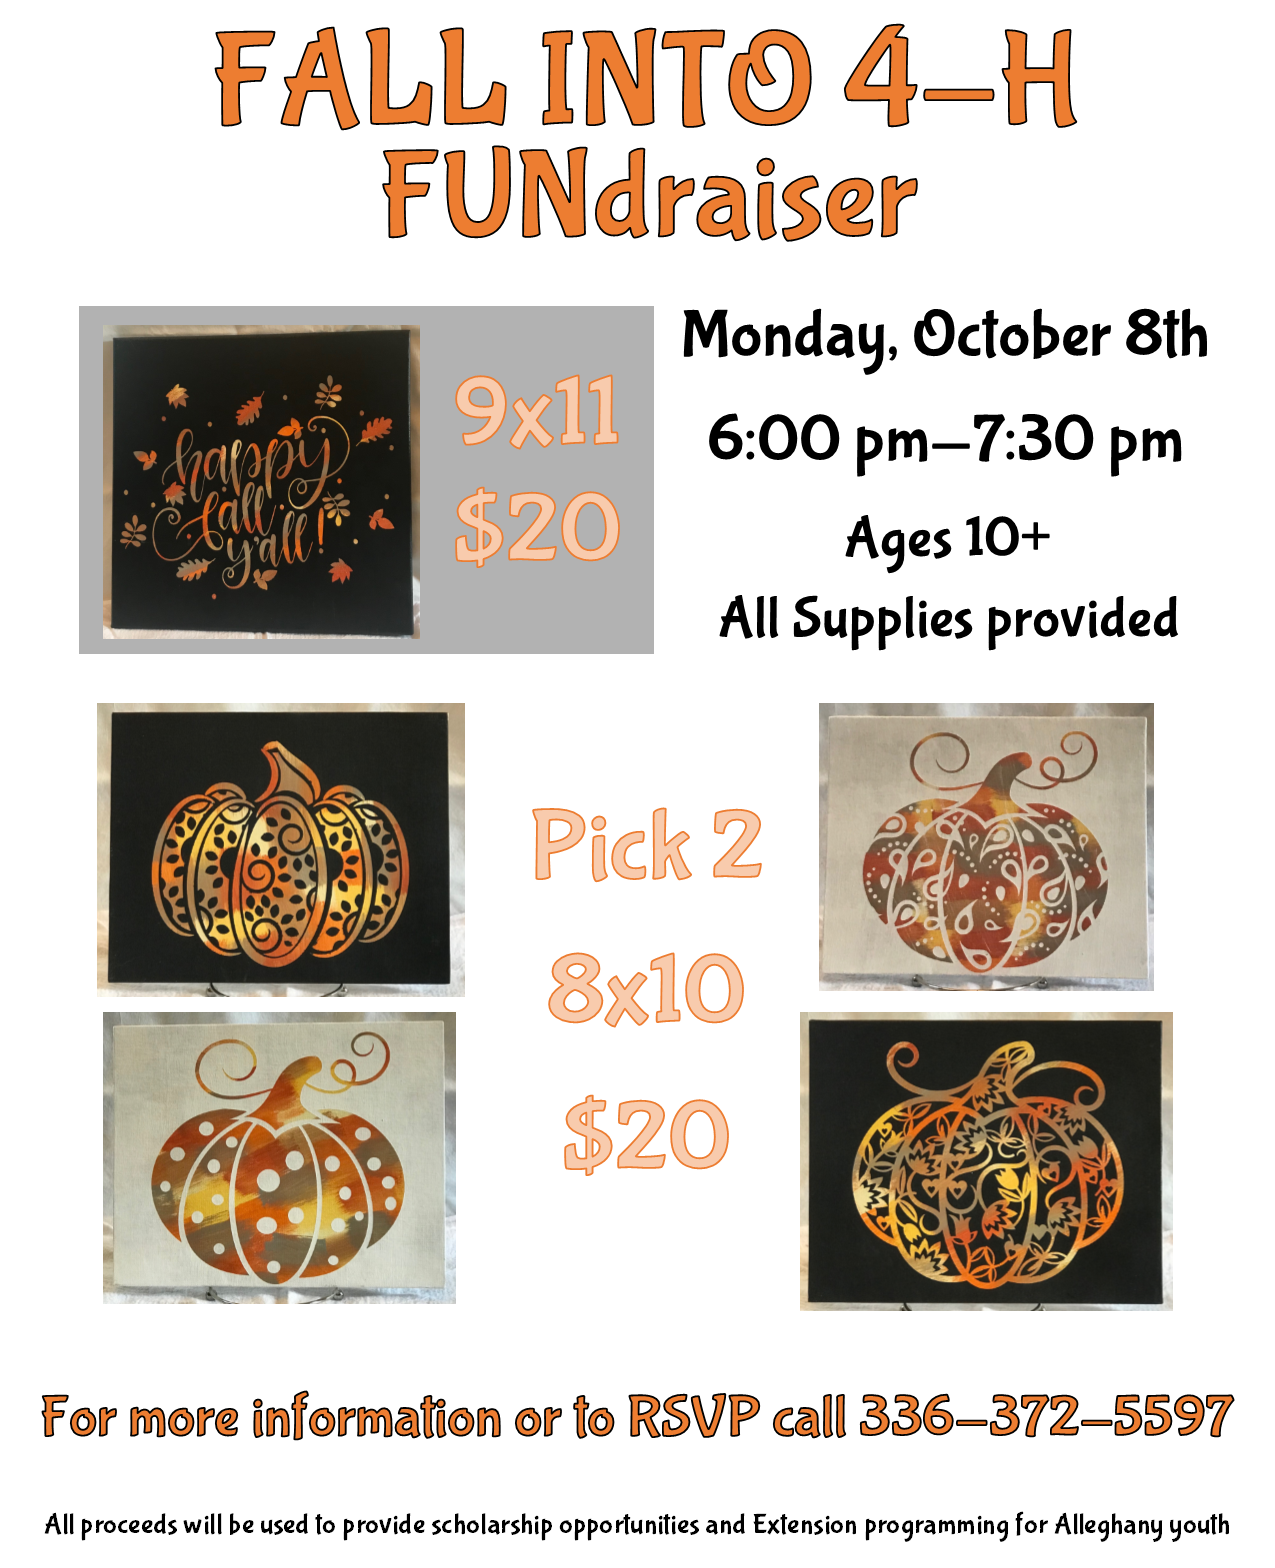 Fall Into 4-H FUNdraiser flyer image